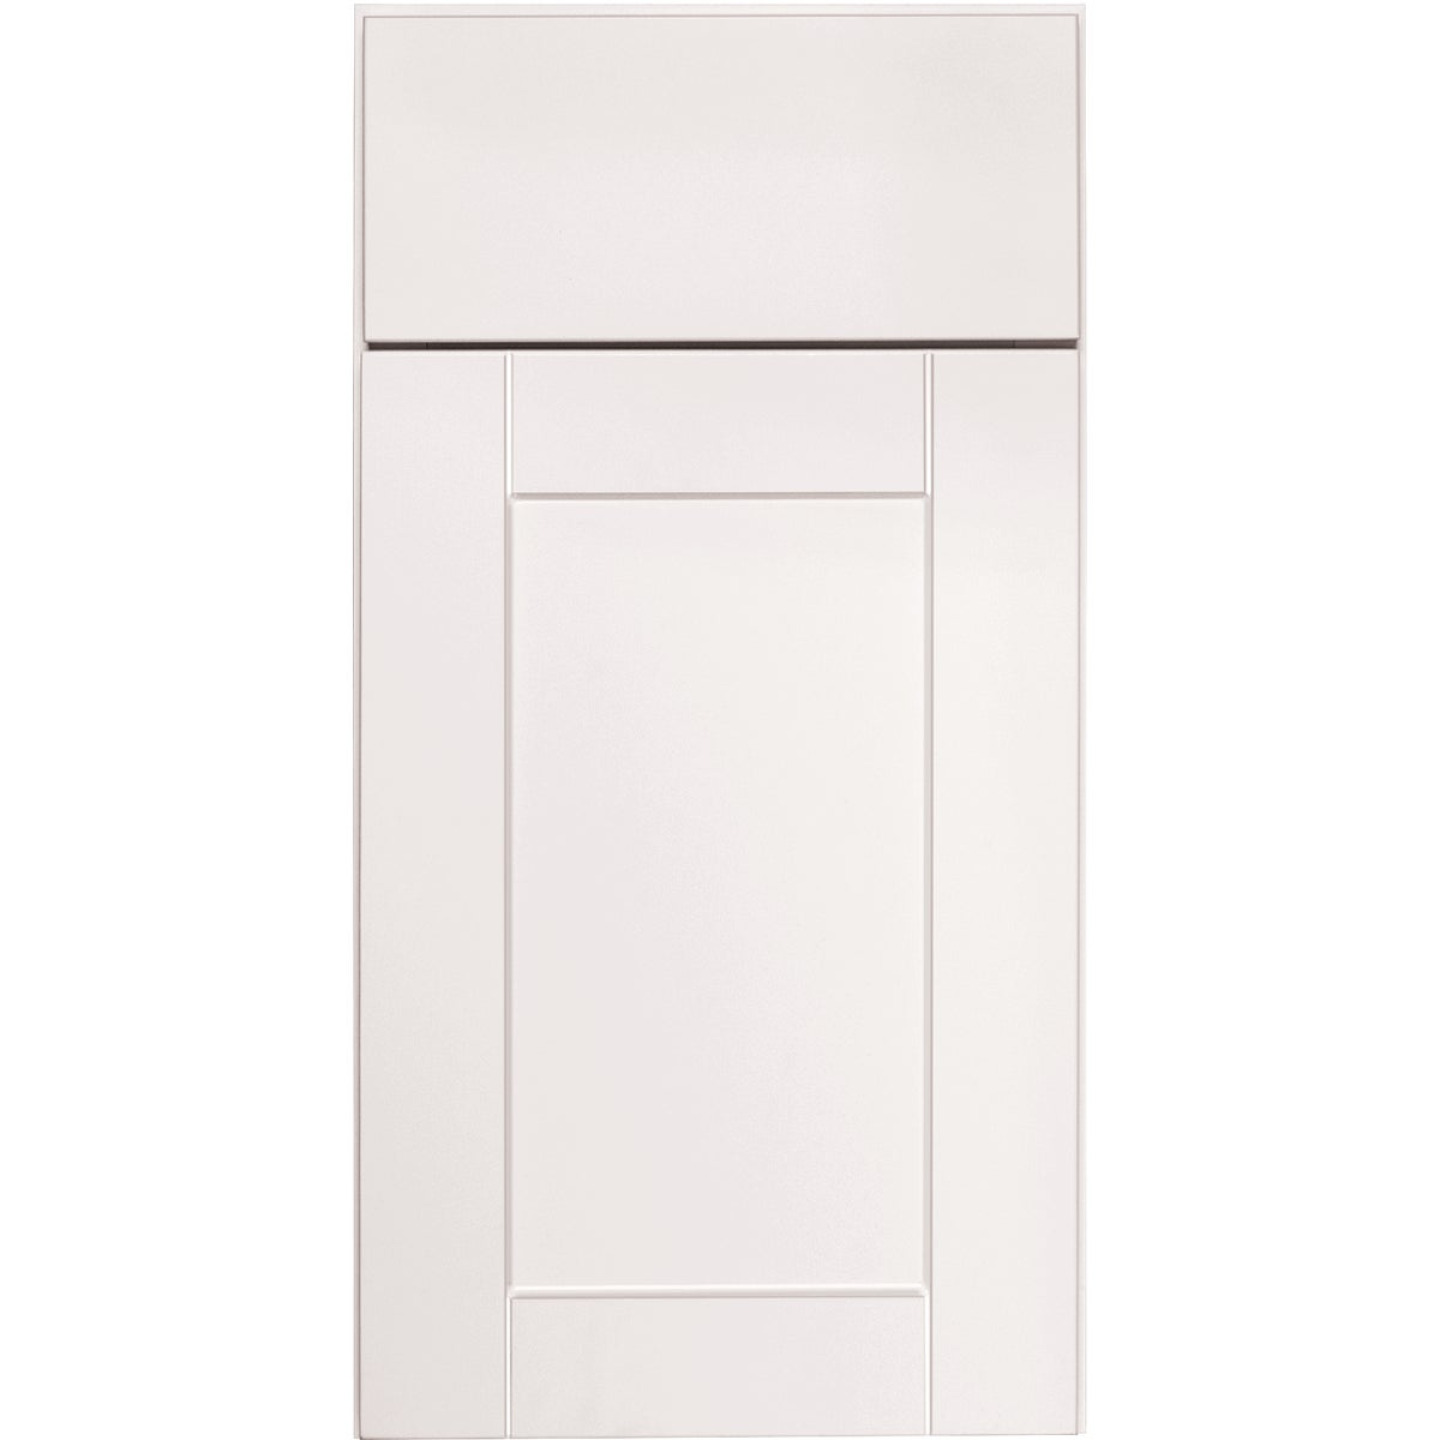 Continental Cabinets Andover Shaker 12 In. W x 34 In. H x 24 In. D White Thermofoil Base Kitchen Cabinet Image 3